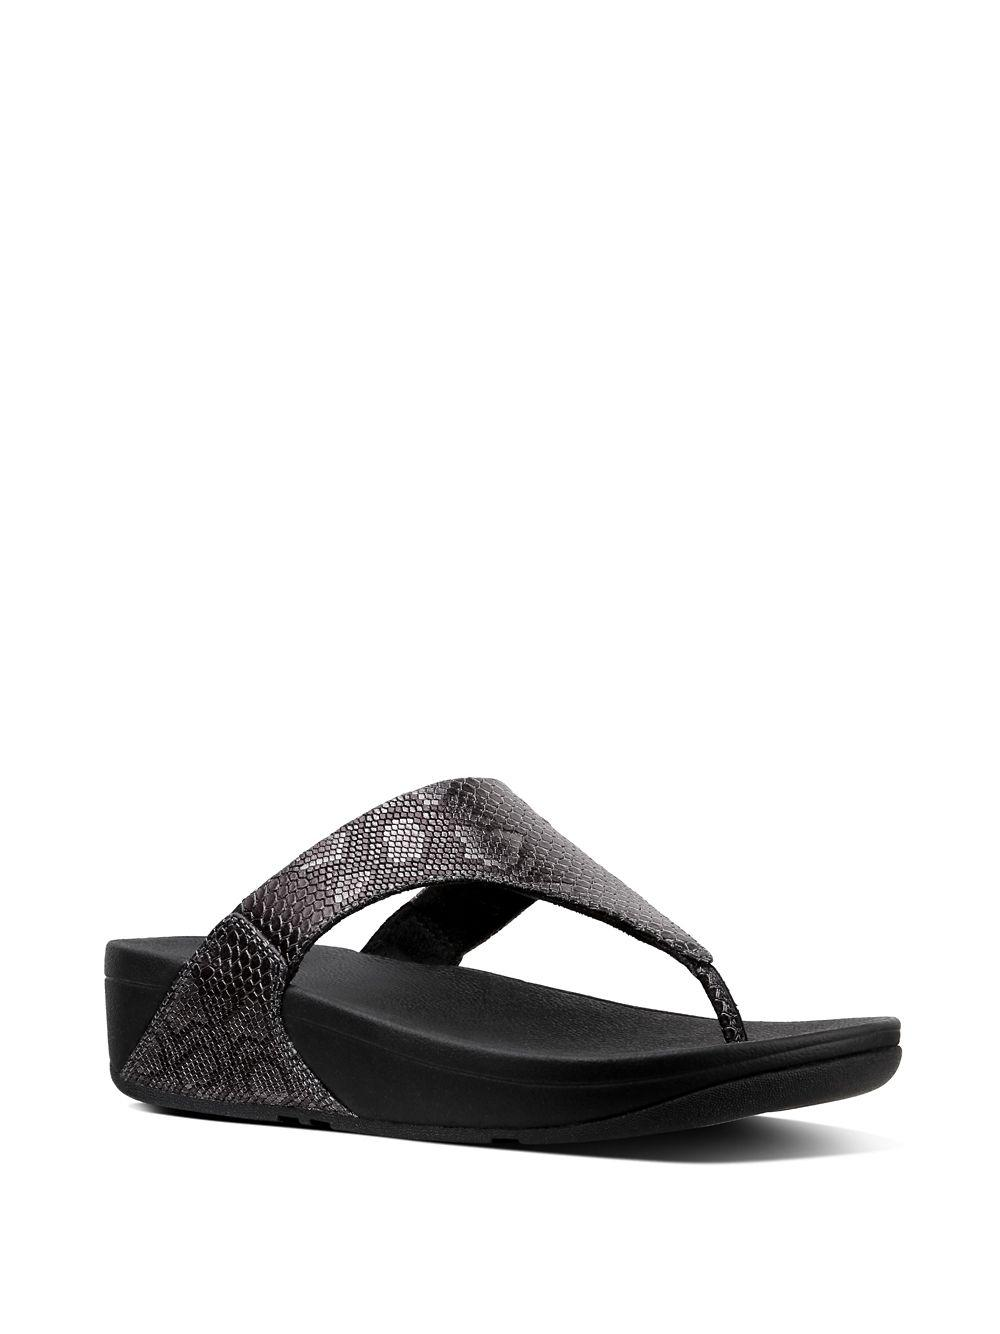 aa905a637b13 Lyst - Fitflop Lulu Leather Wedge Thong Sandals in Black